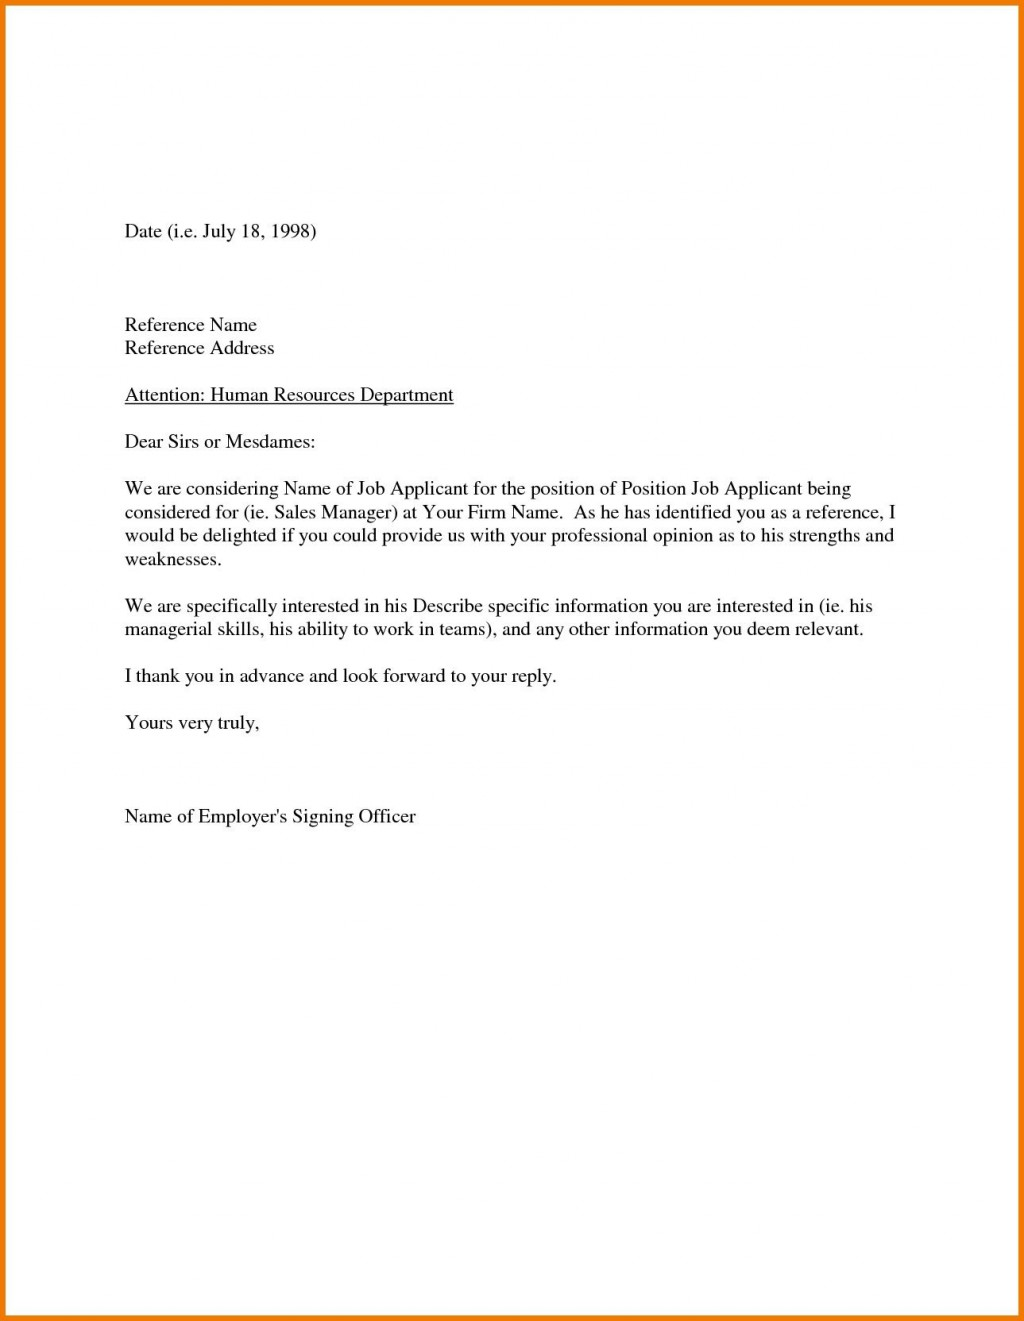 Letter Of Recommendation Employer from www.addictionary.org